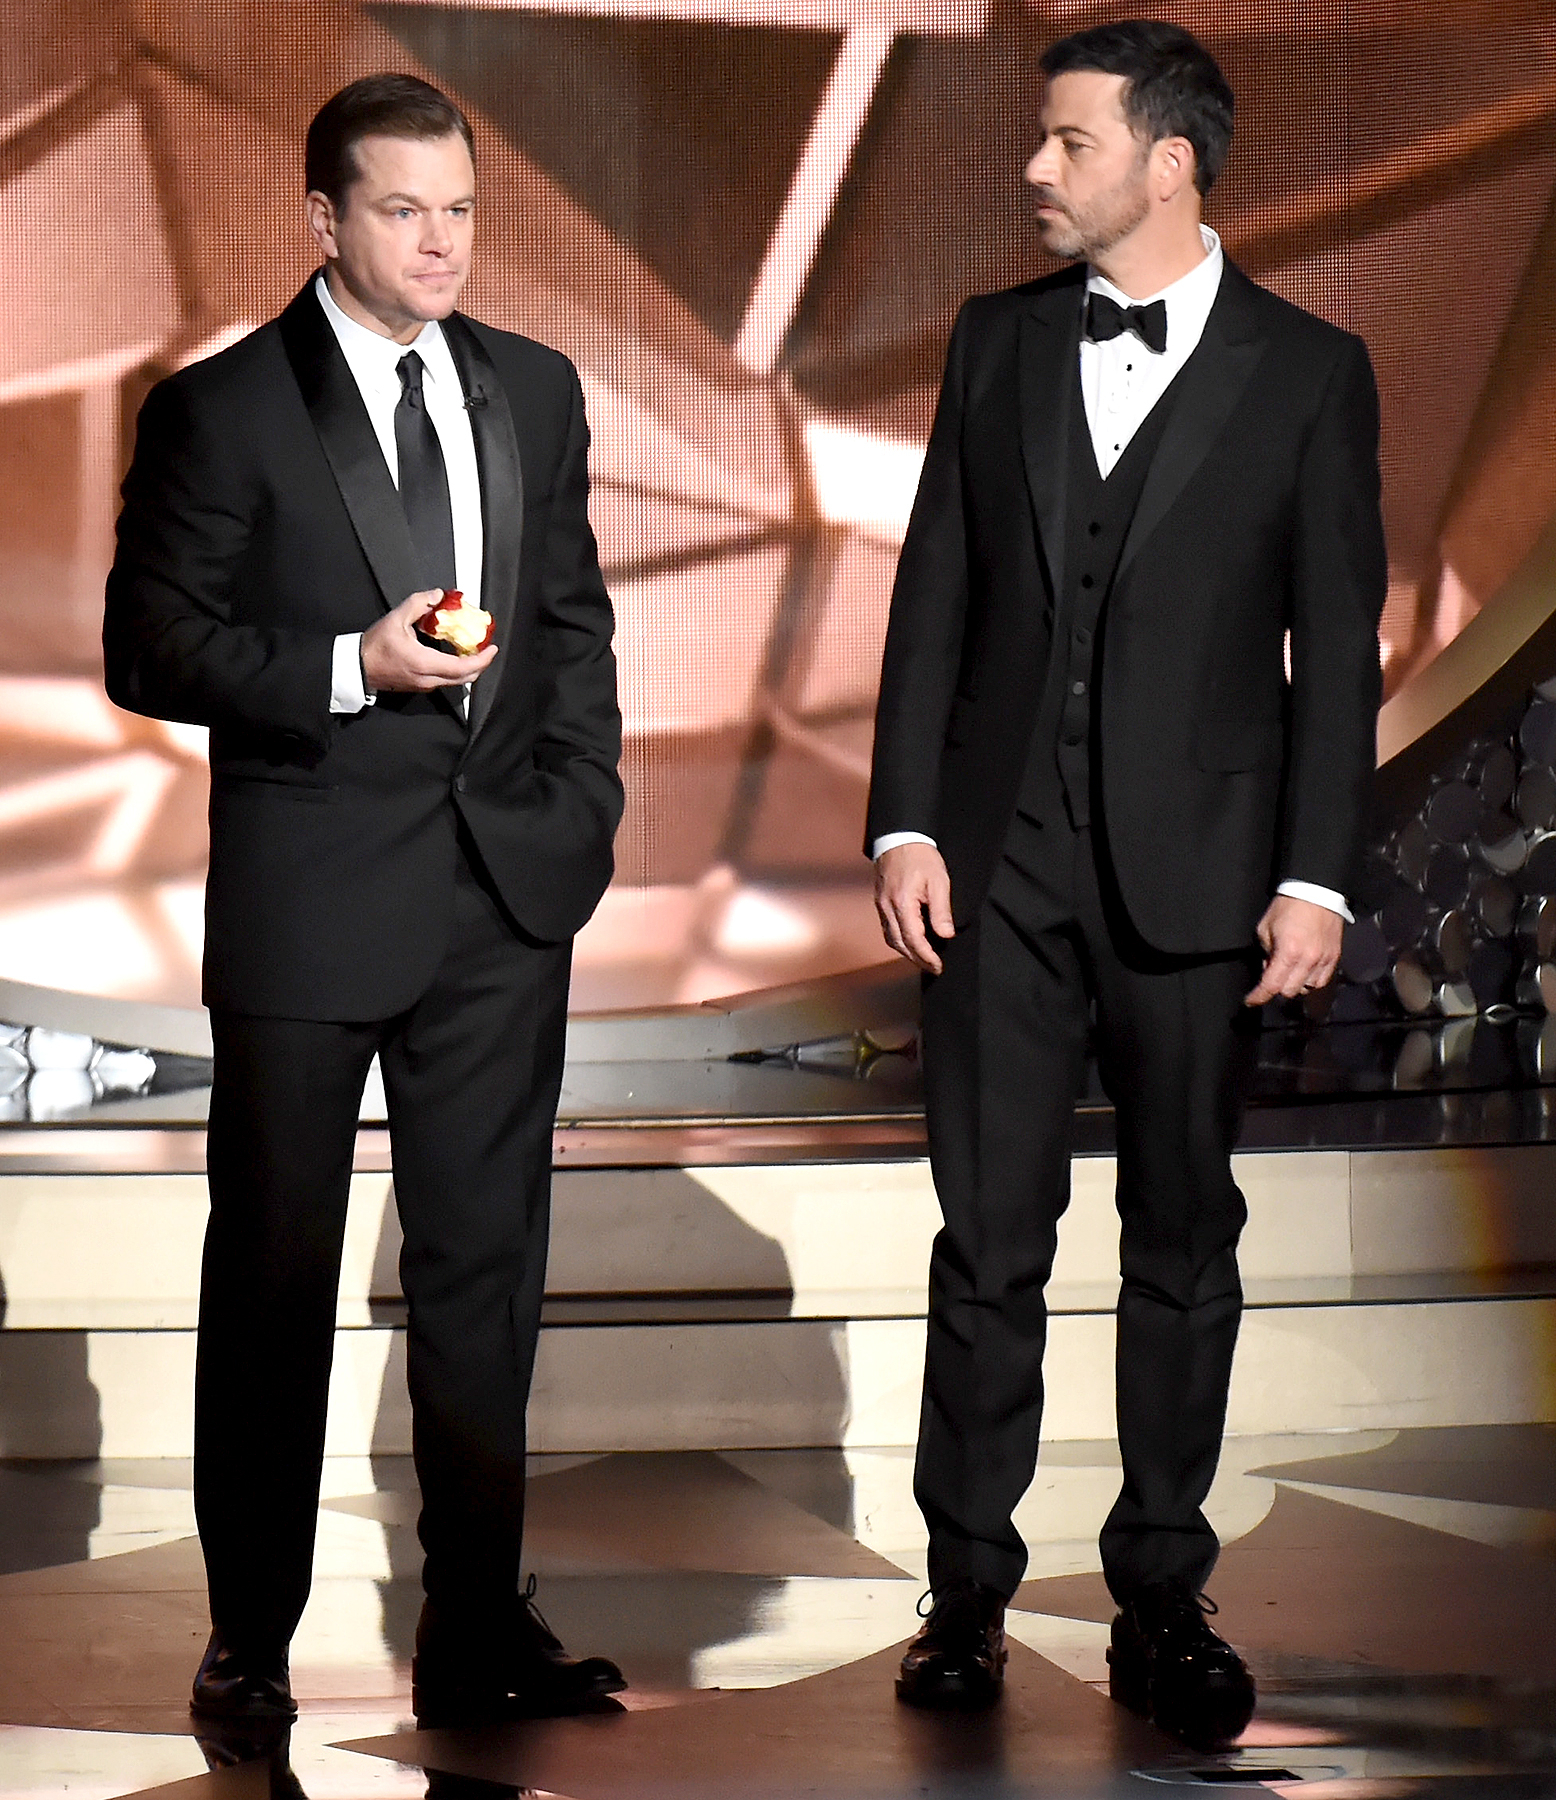 Matt Damon and host Jimmy Kimmel speak onstage during the 68th Annual Primetime Emmy Awards at Microsoft Theater on September 18, 2016 in Los Angeles, California.